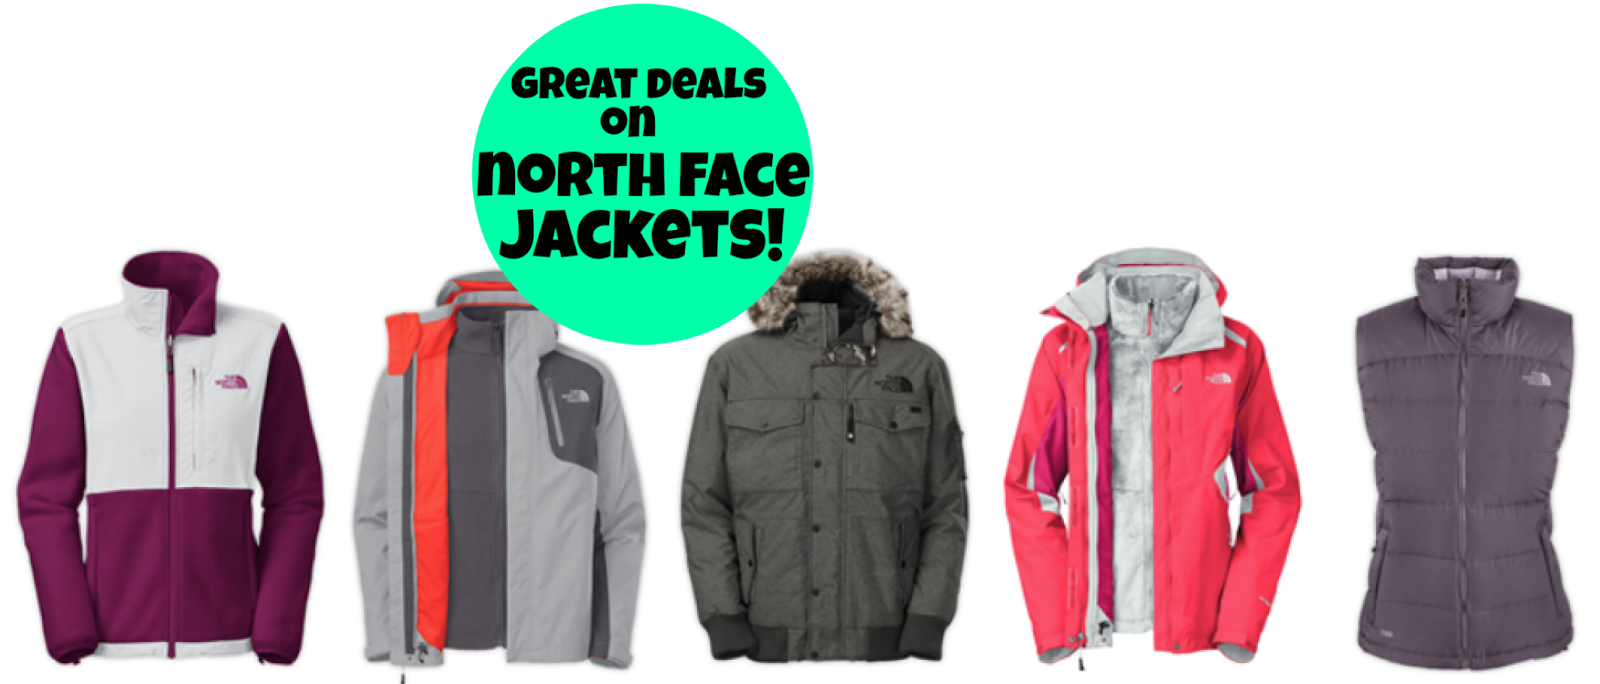 http://www.thebinderladies.com/2014/12/sunnysports-awesome-deals-on-north-face.html#.VI3lbIfduyM